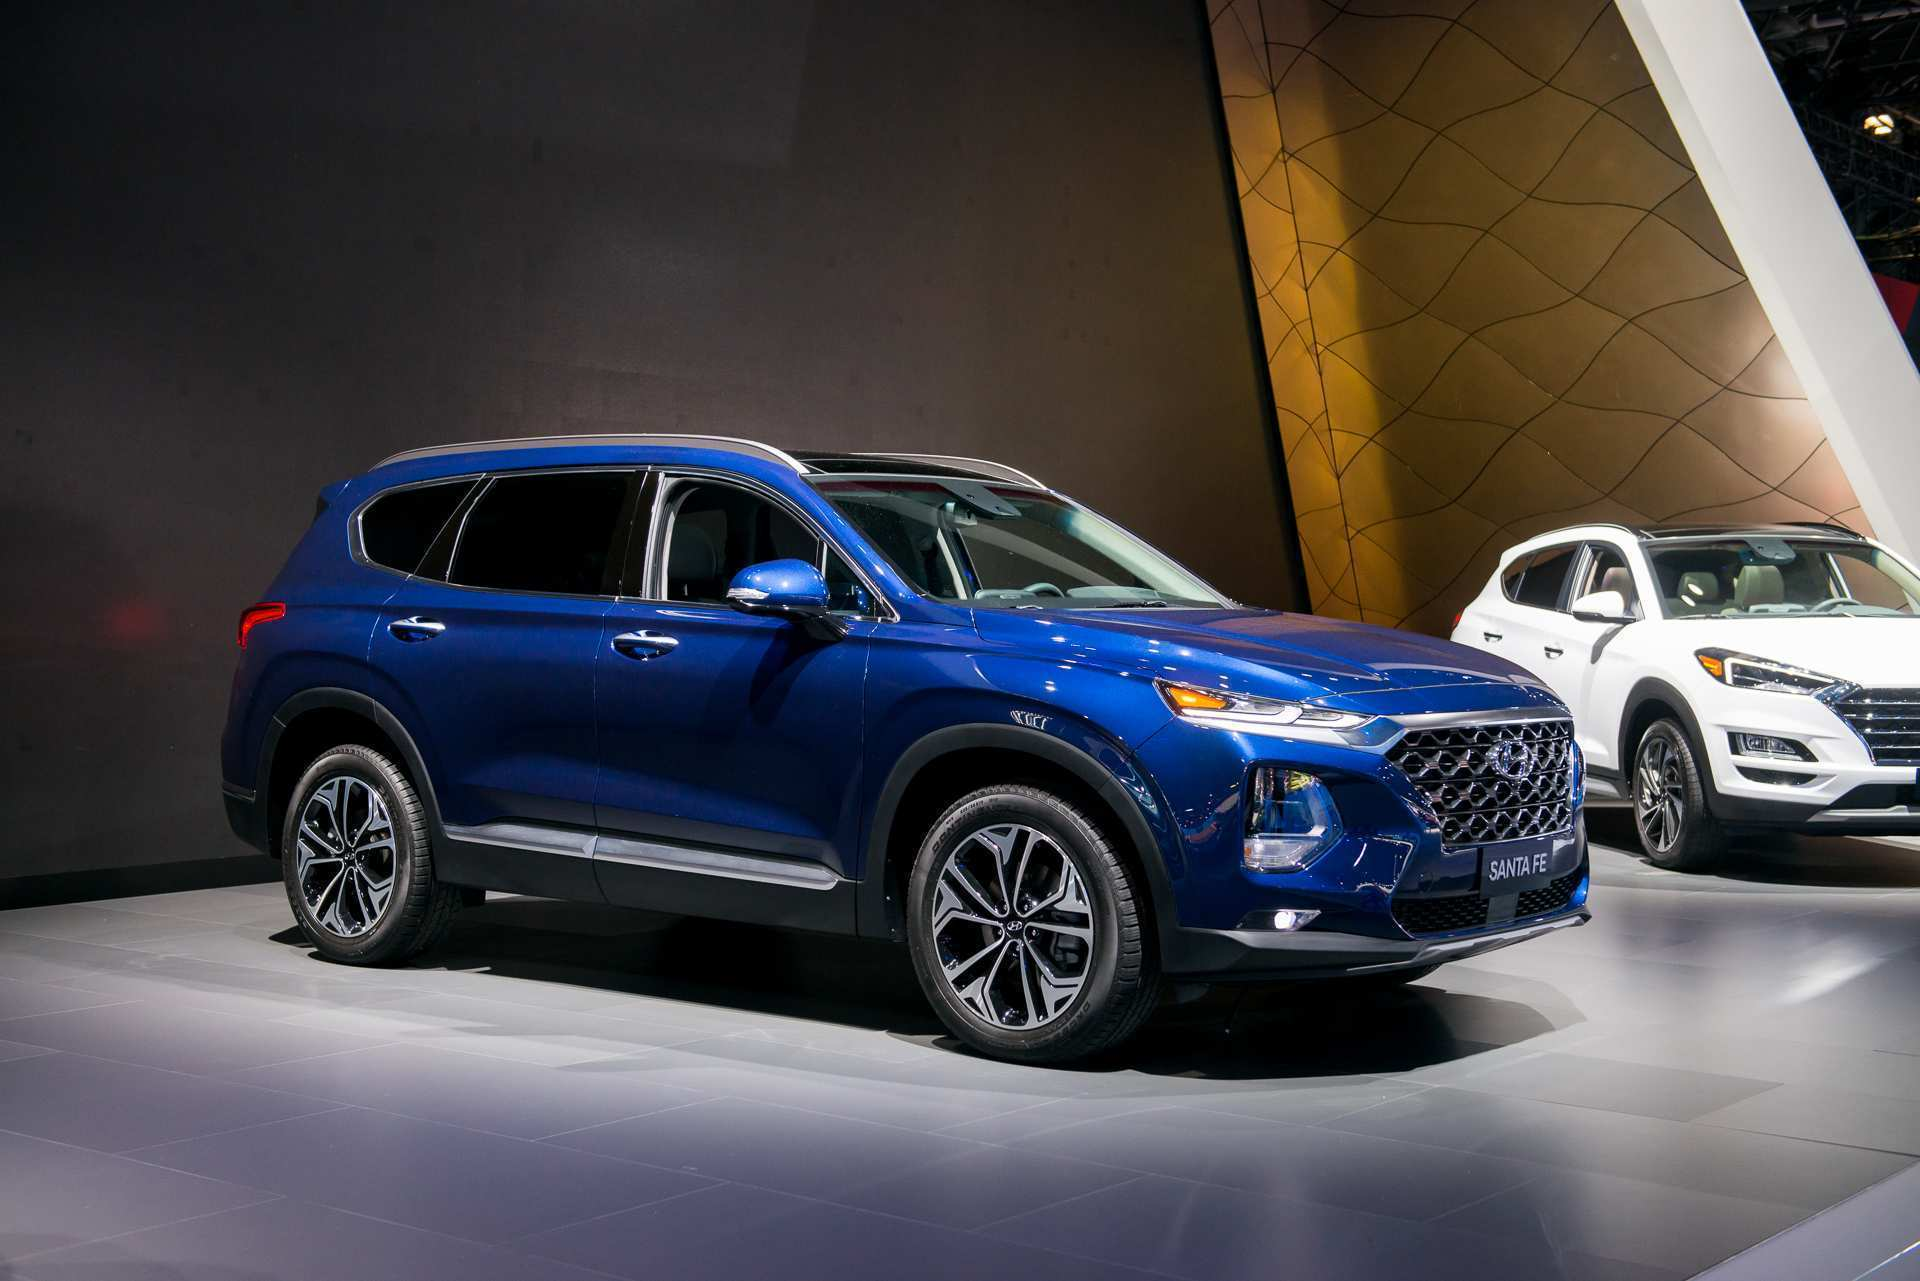 74 Concept of 2019 Hyundai Santa Fe Launch Prices with 2019 Hyundai Santa Fe Launch